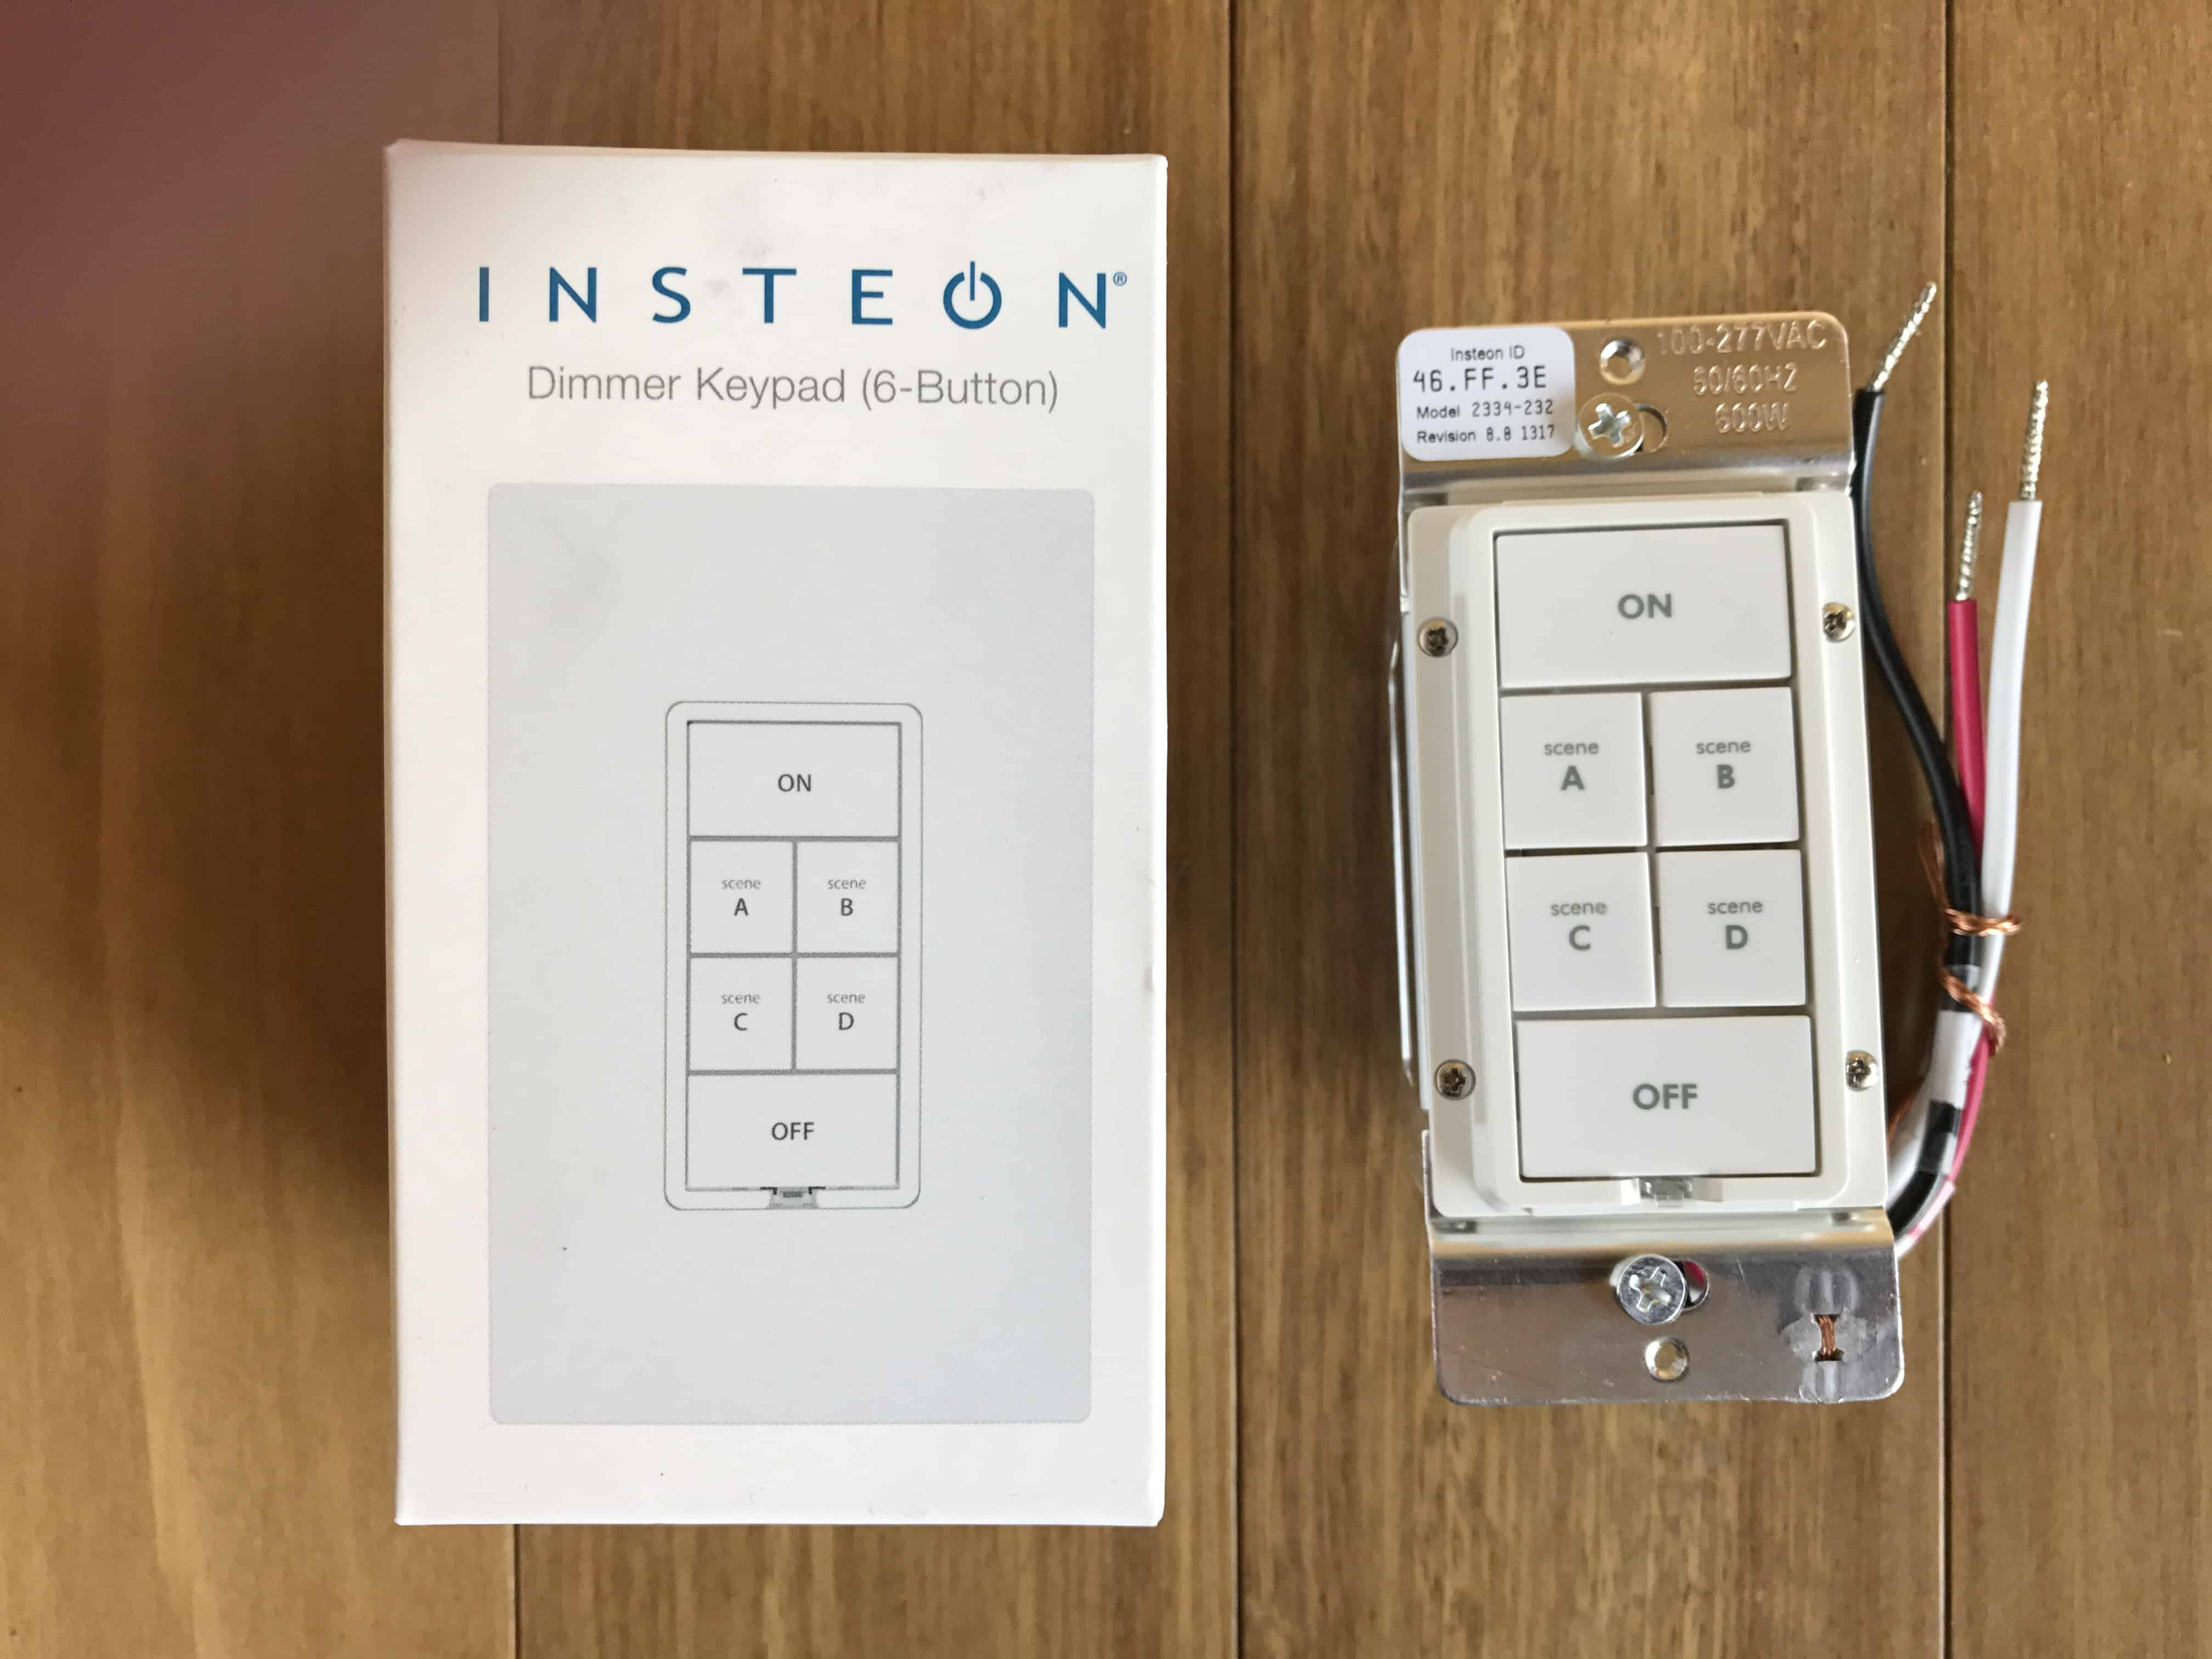 Smart Home Top 10 Tips For Getting Started With Insteon Stark Insider Switches May Need A Neutral Wire Switch Makers Have Built All Buy Only The Latest Revisions Of Hubs And Modules